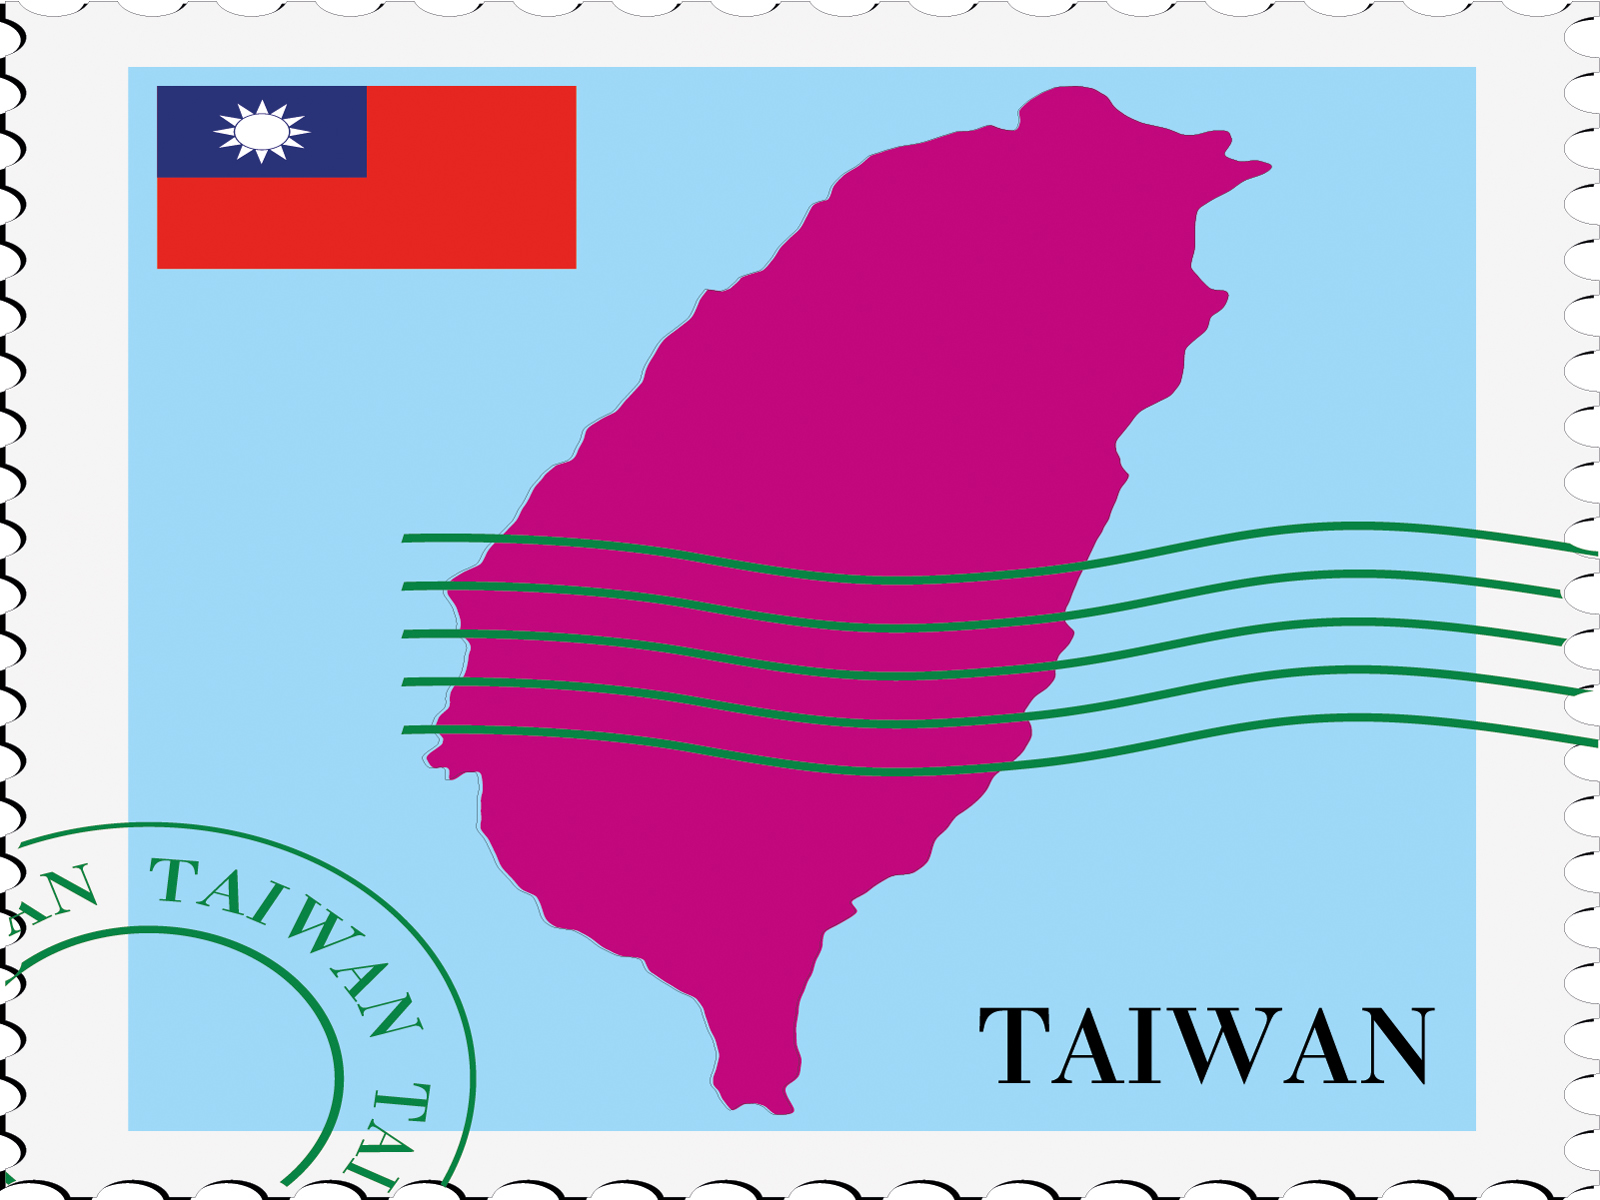 Taiwan map and flags backgrounds